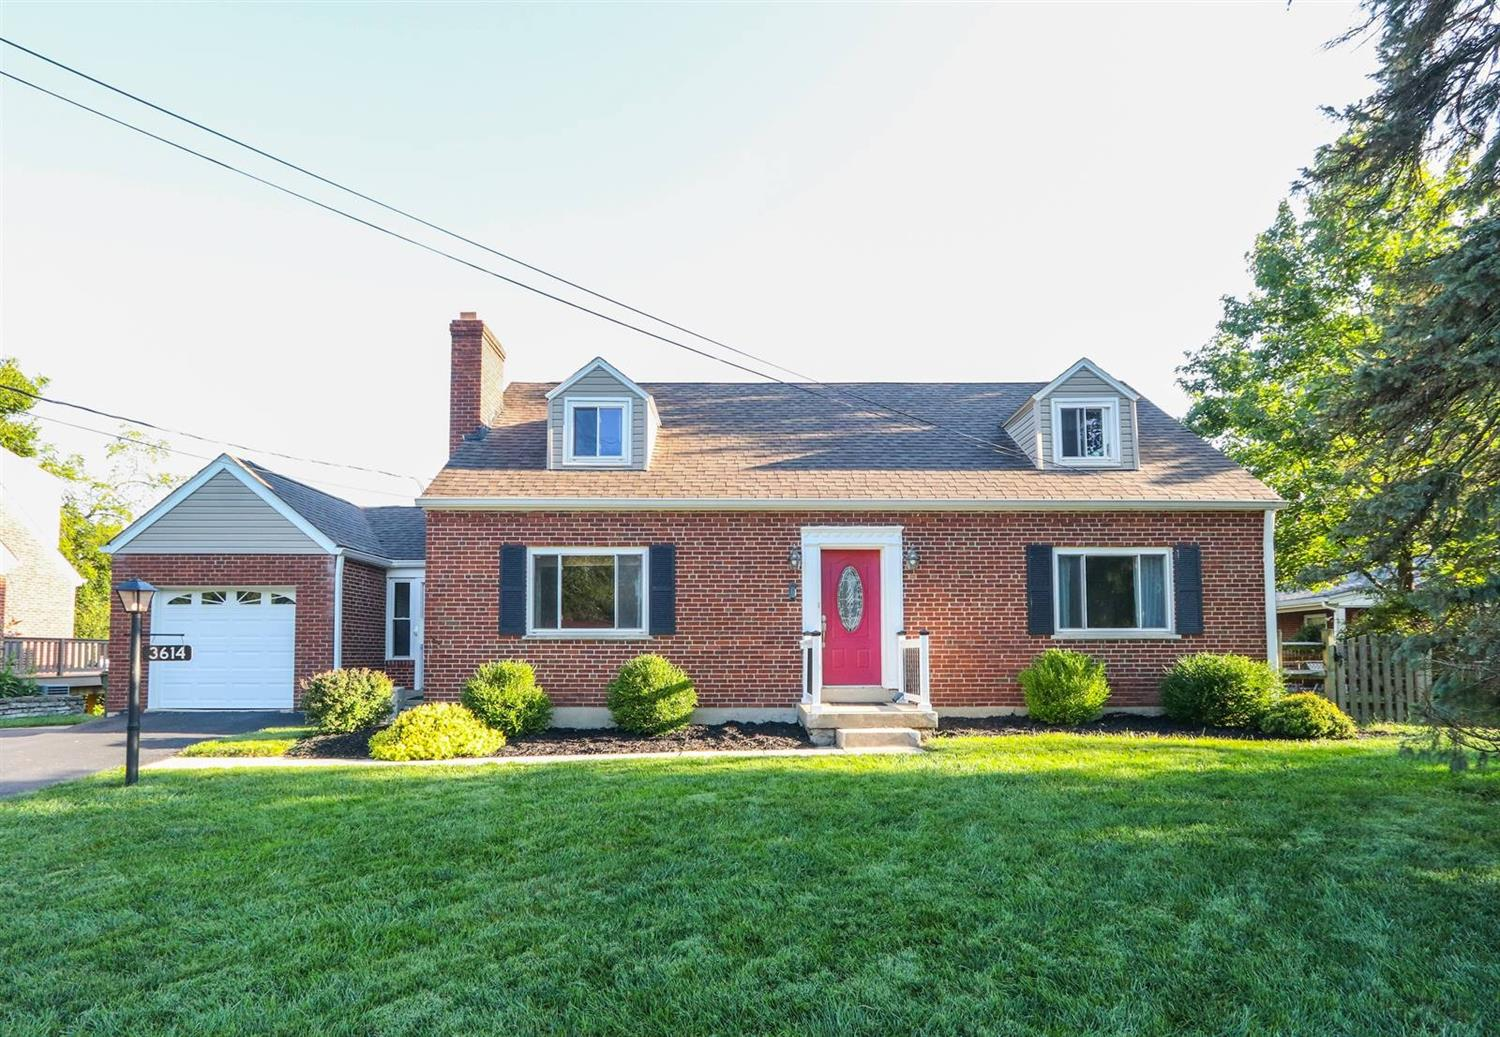 Property for sale at 3614 Lansdowne Avenue, Amberley,  Ohio 45236